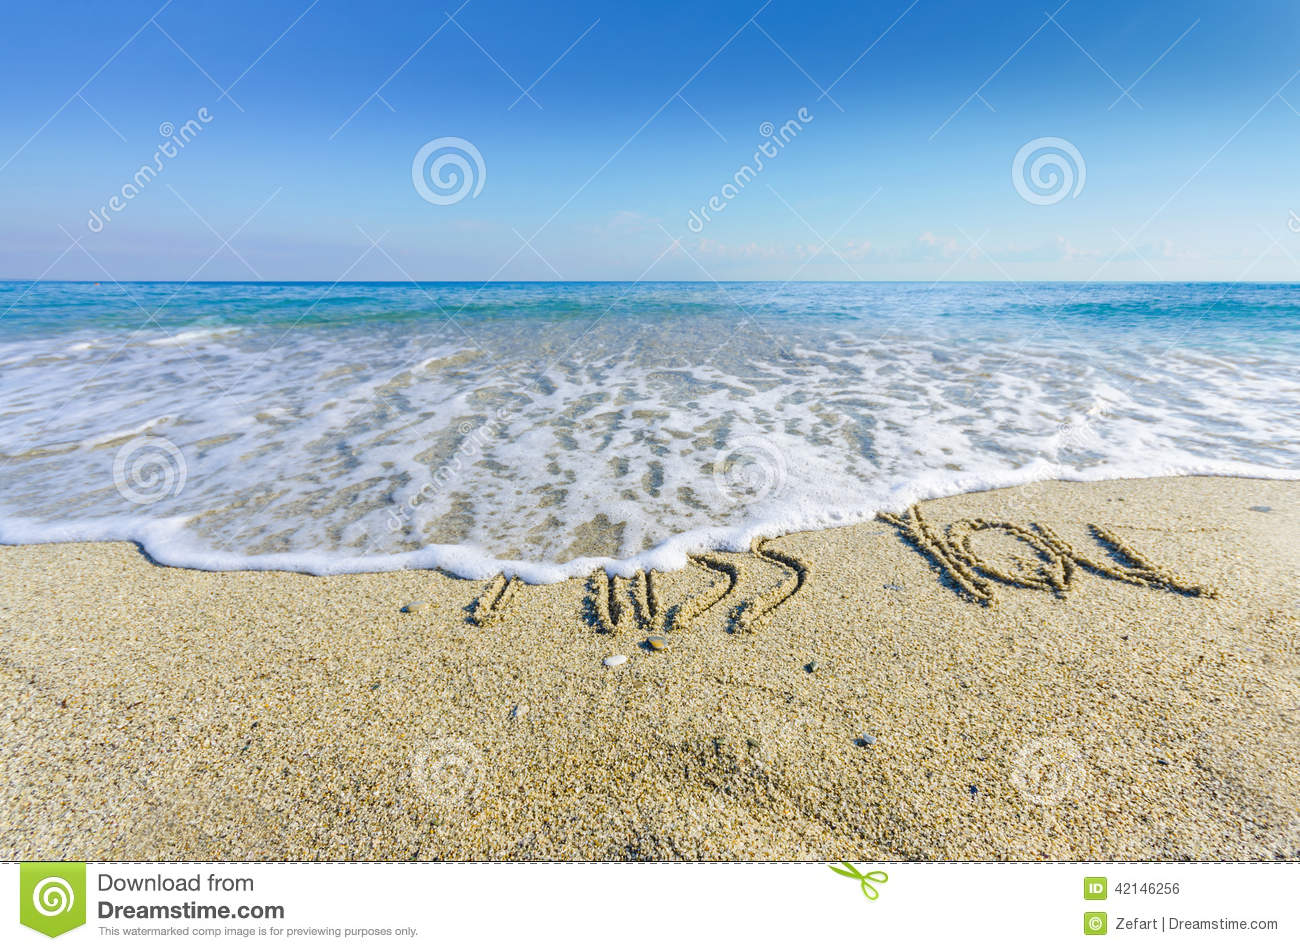 MISS YOU, Creative Abstract Graphic Message Stock Photo - Image: 42146256